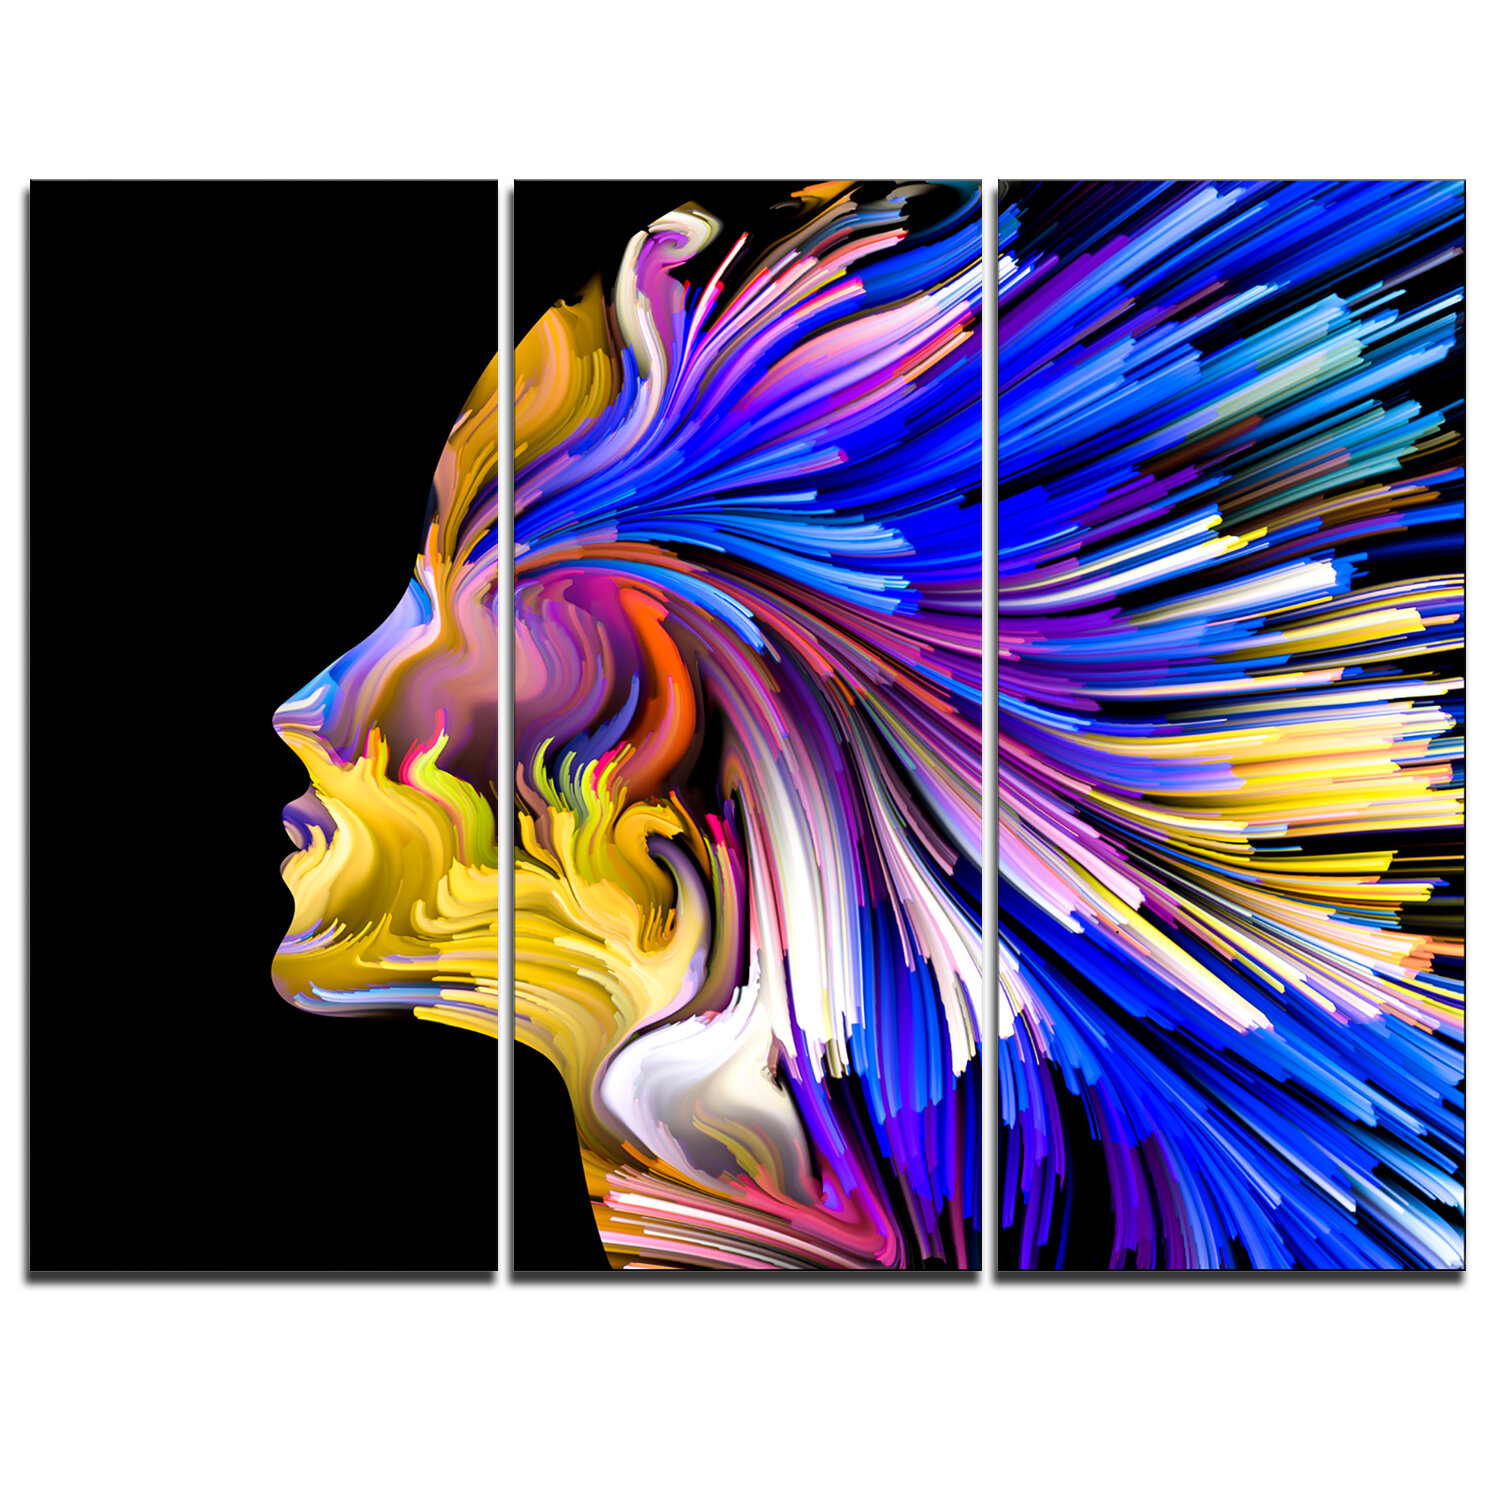 Designart Imagination In Blue 3 Piece Graphic Art On Wrapped Canvas Set Wayfair